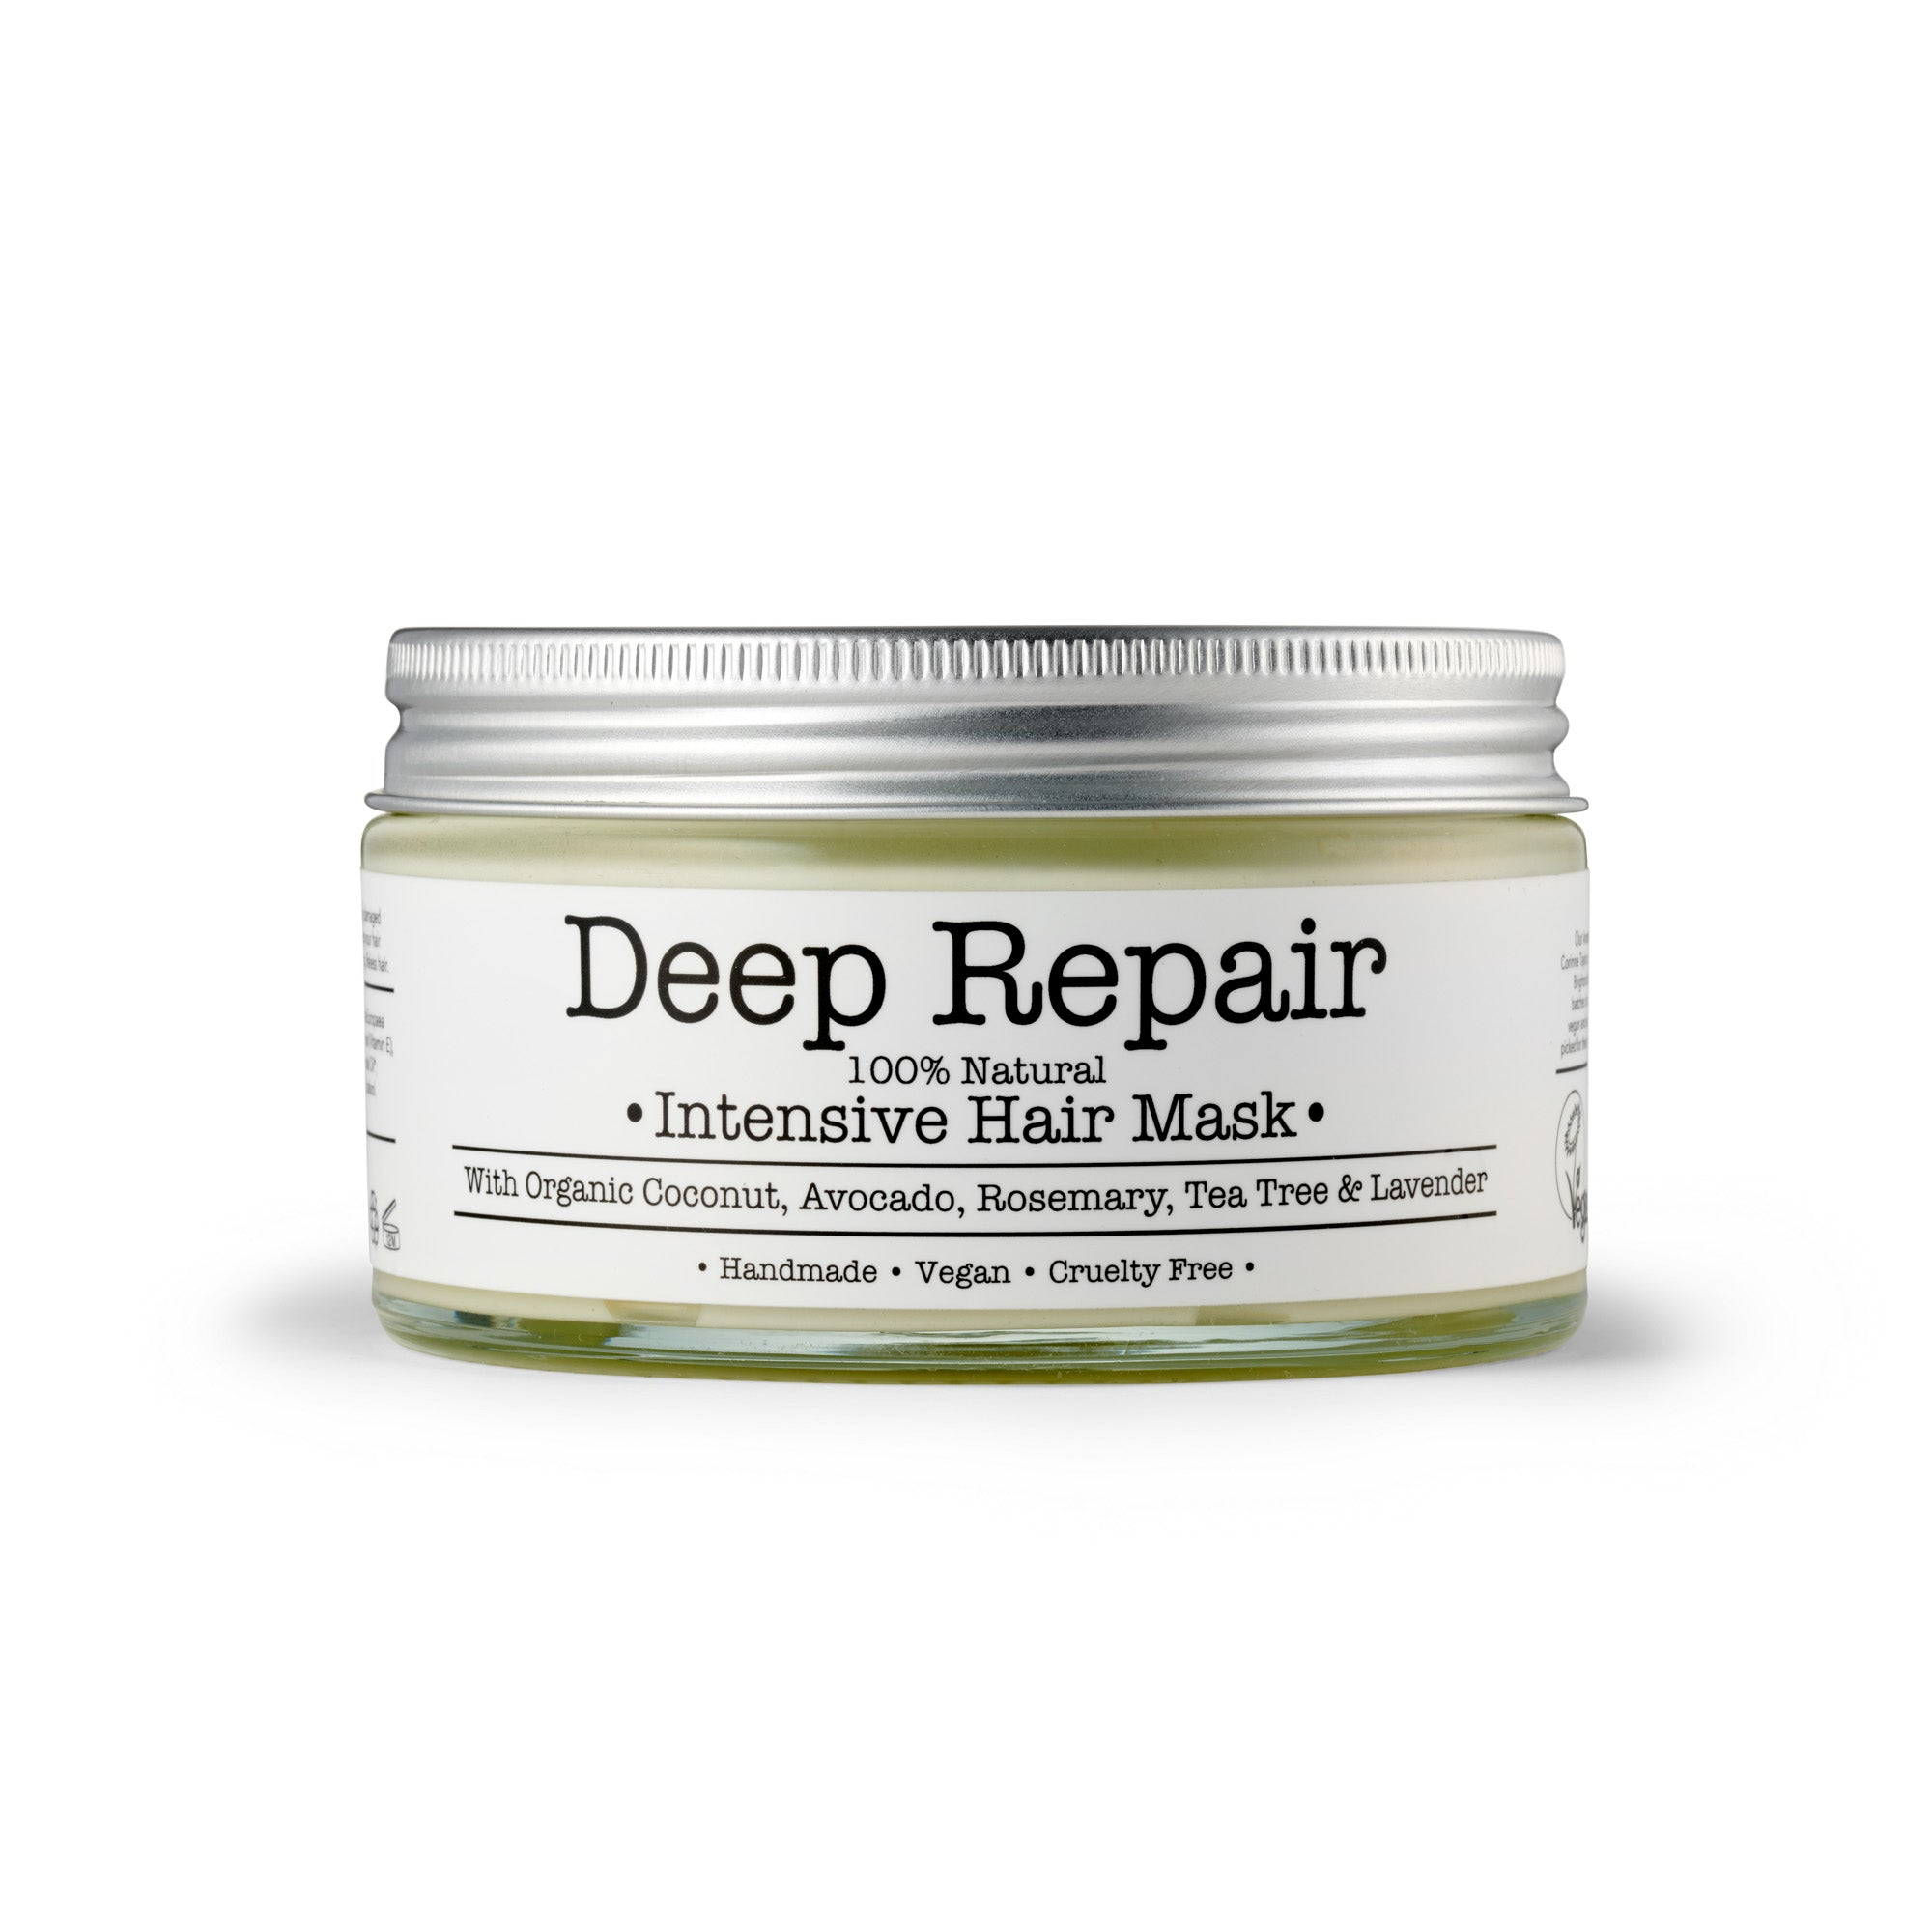 Deep Repair Hair Mask by Corinne Taylor. 100% natural, vegan, cruelty free, organic.